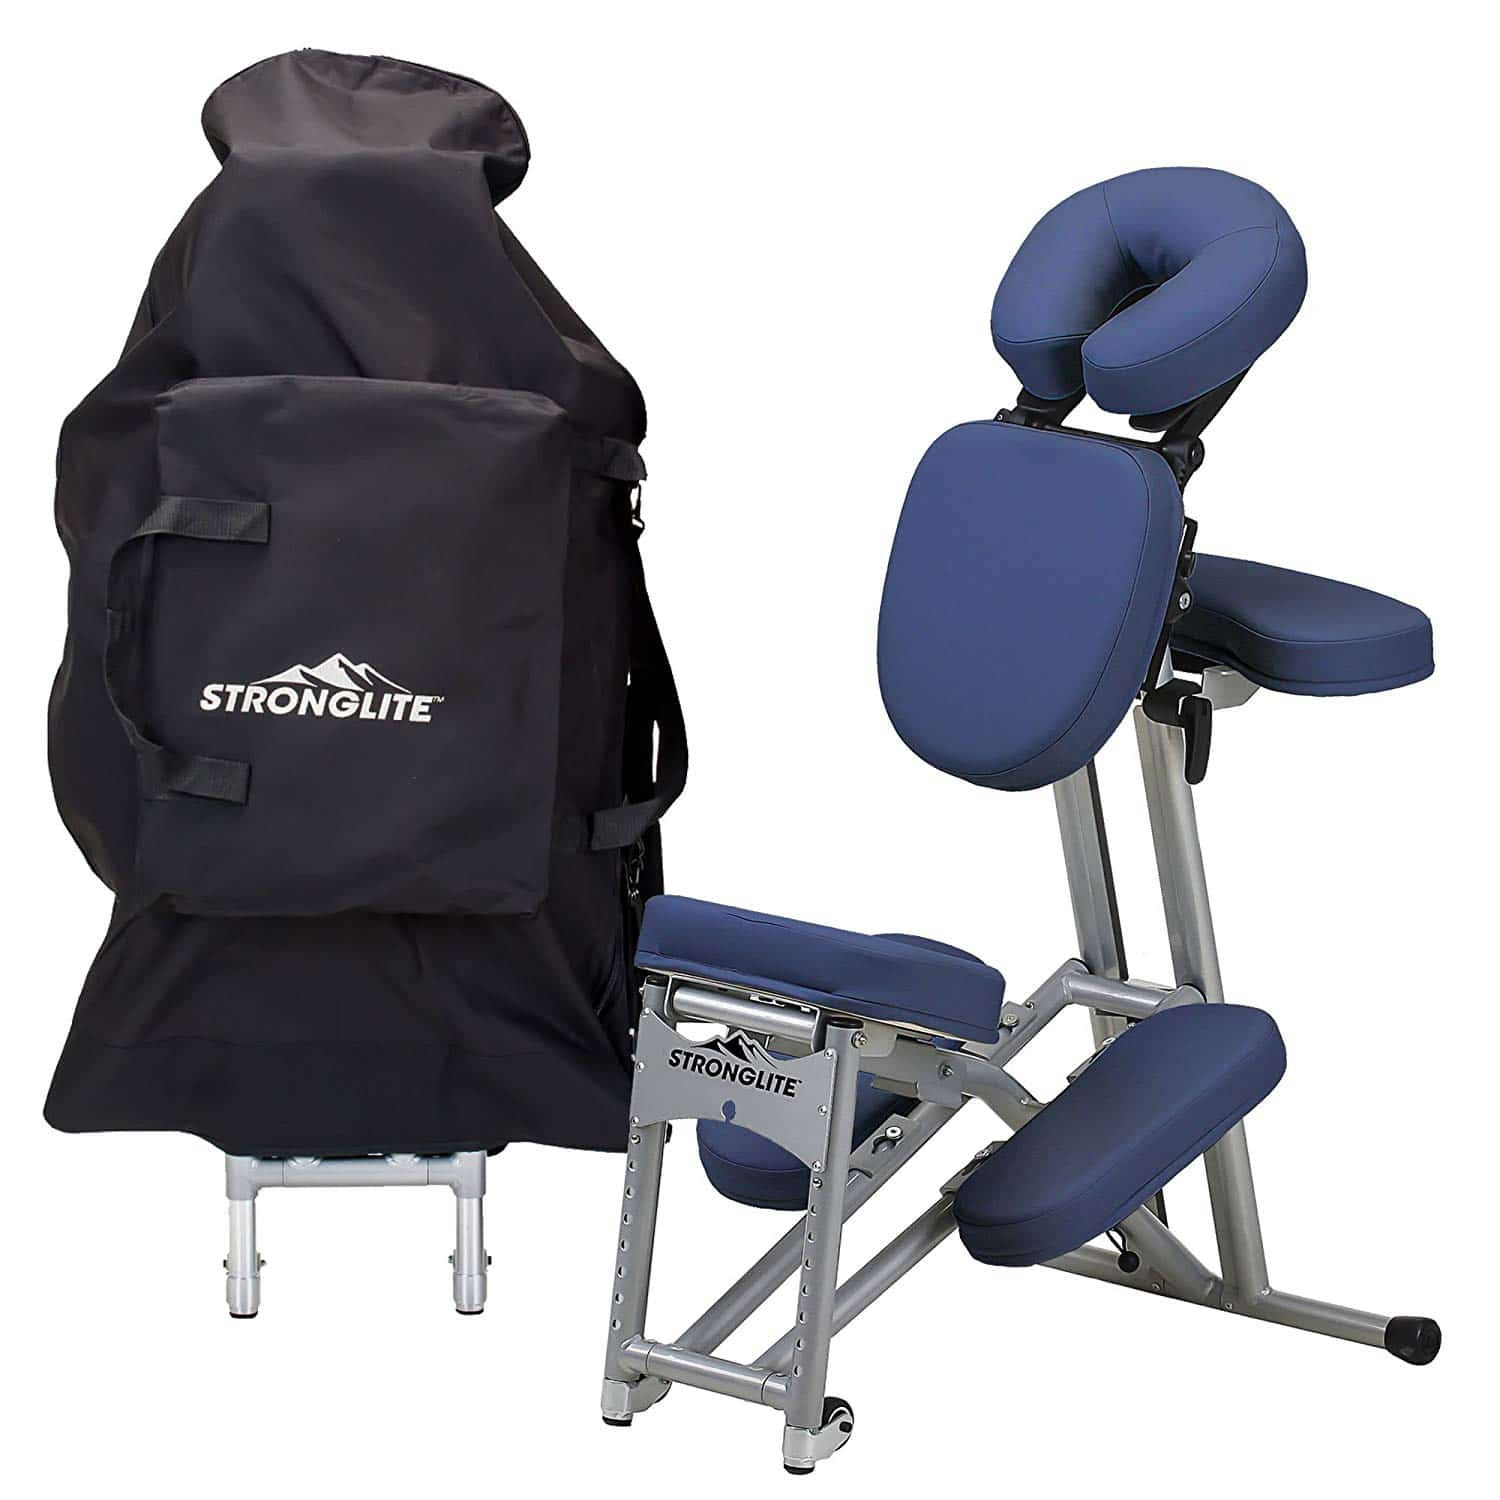 Stronglite massagechair topratedhomeproducts